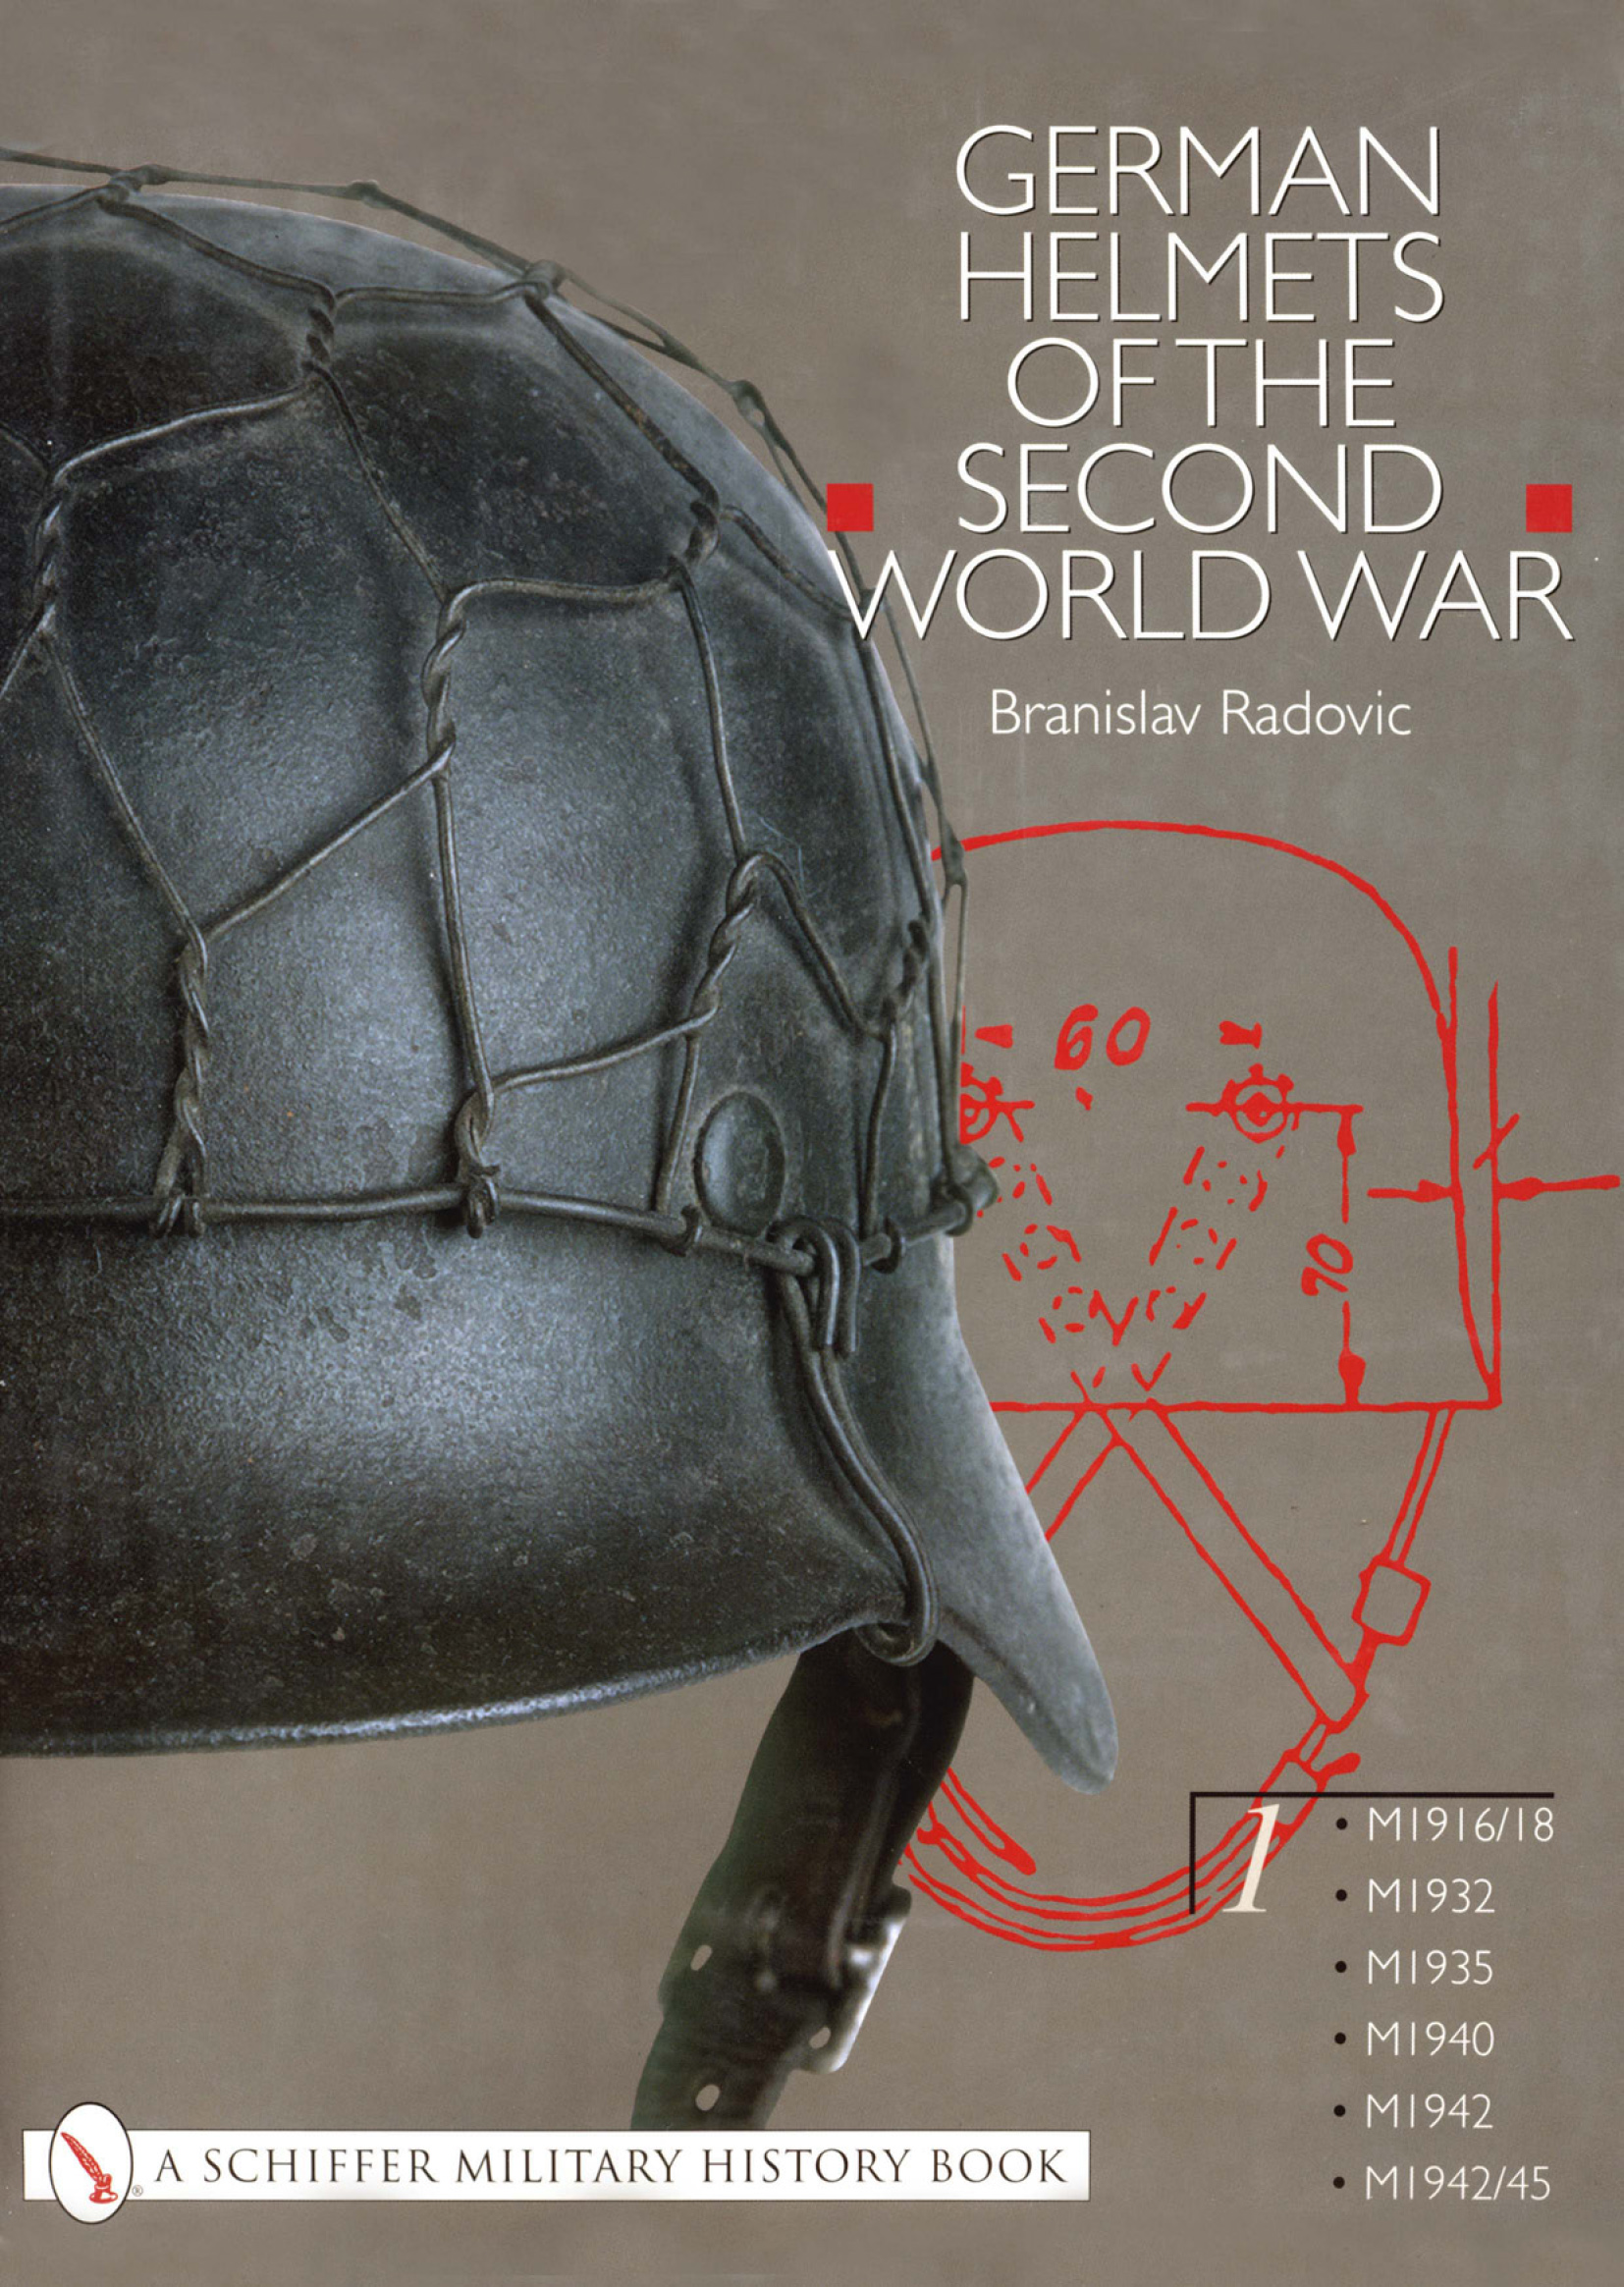 German Helmets of the Second World War.jpg